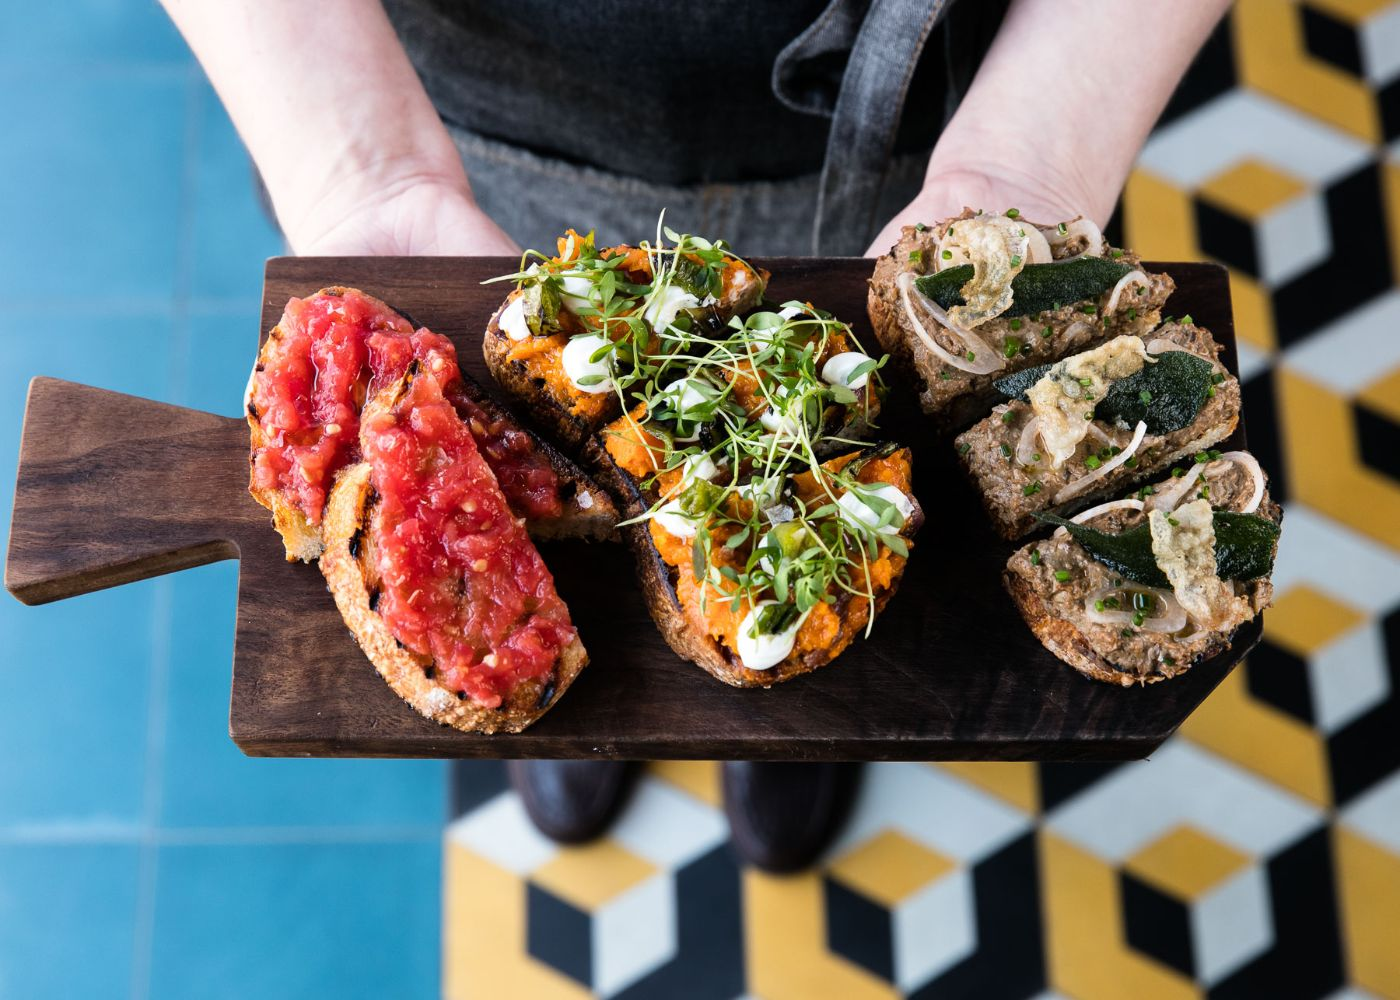 Three types of Danish-style Smørrebrød presented on a wooden platter against colorful blue, yellow, black and white tiles.